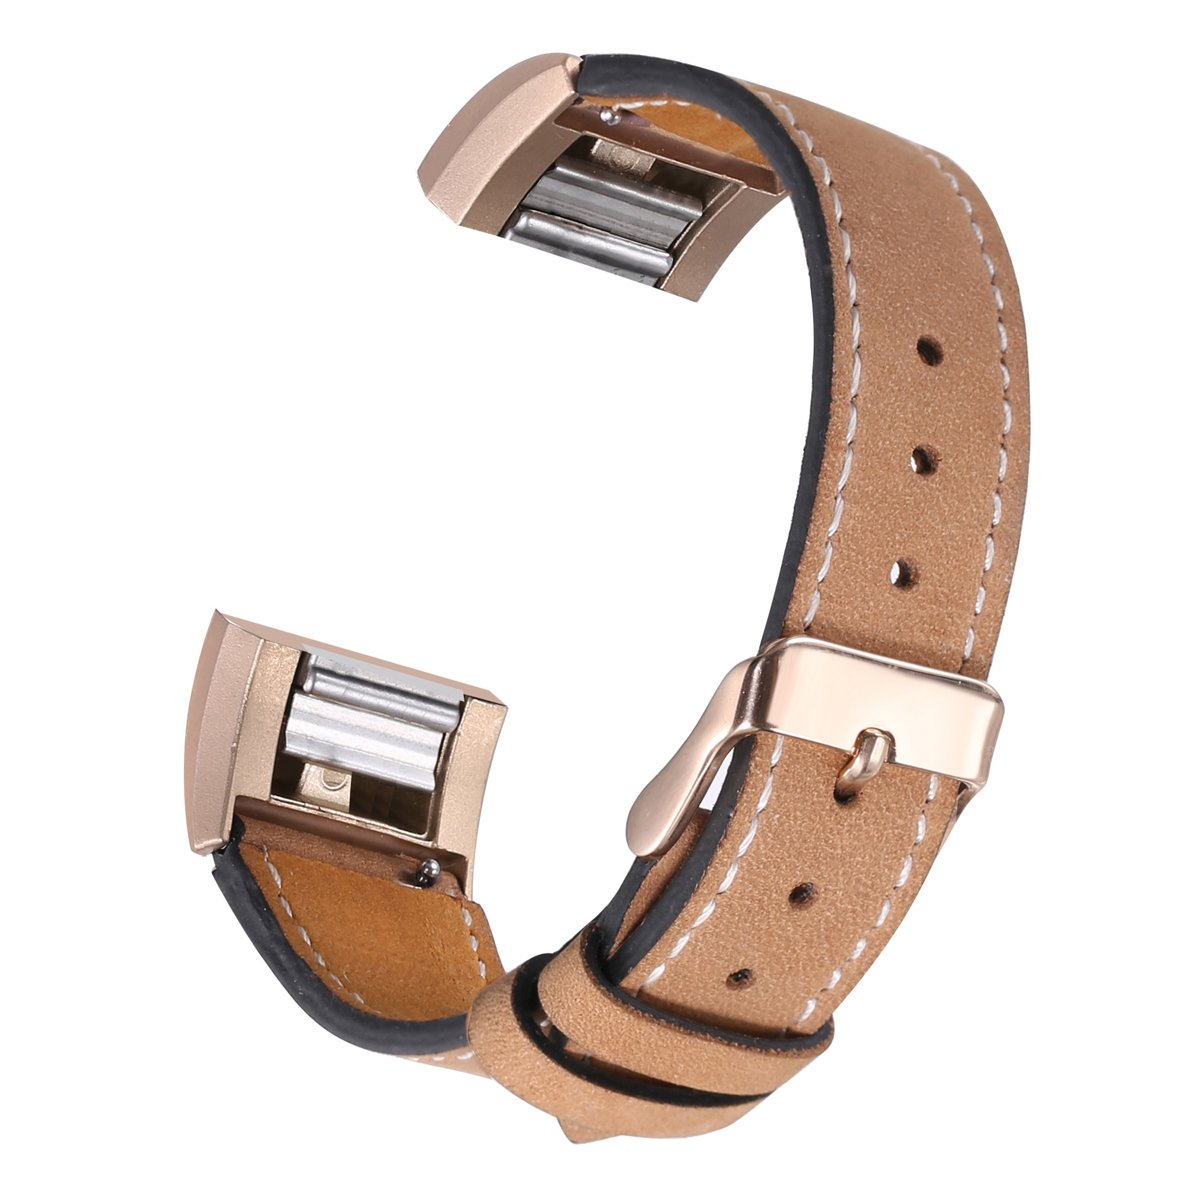 bayite Leather Band for Fitbit Charge 2, Light Brown with line, 5.5'' - 7.1''